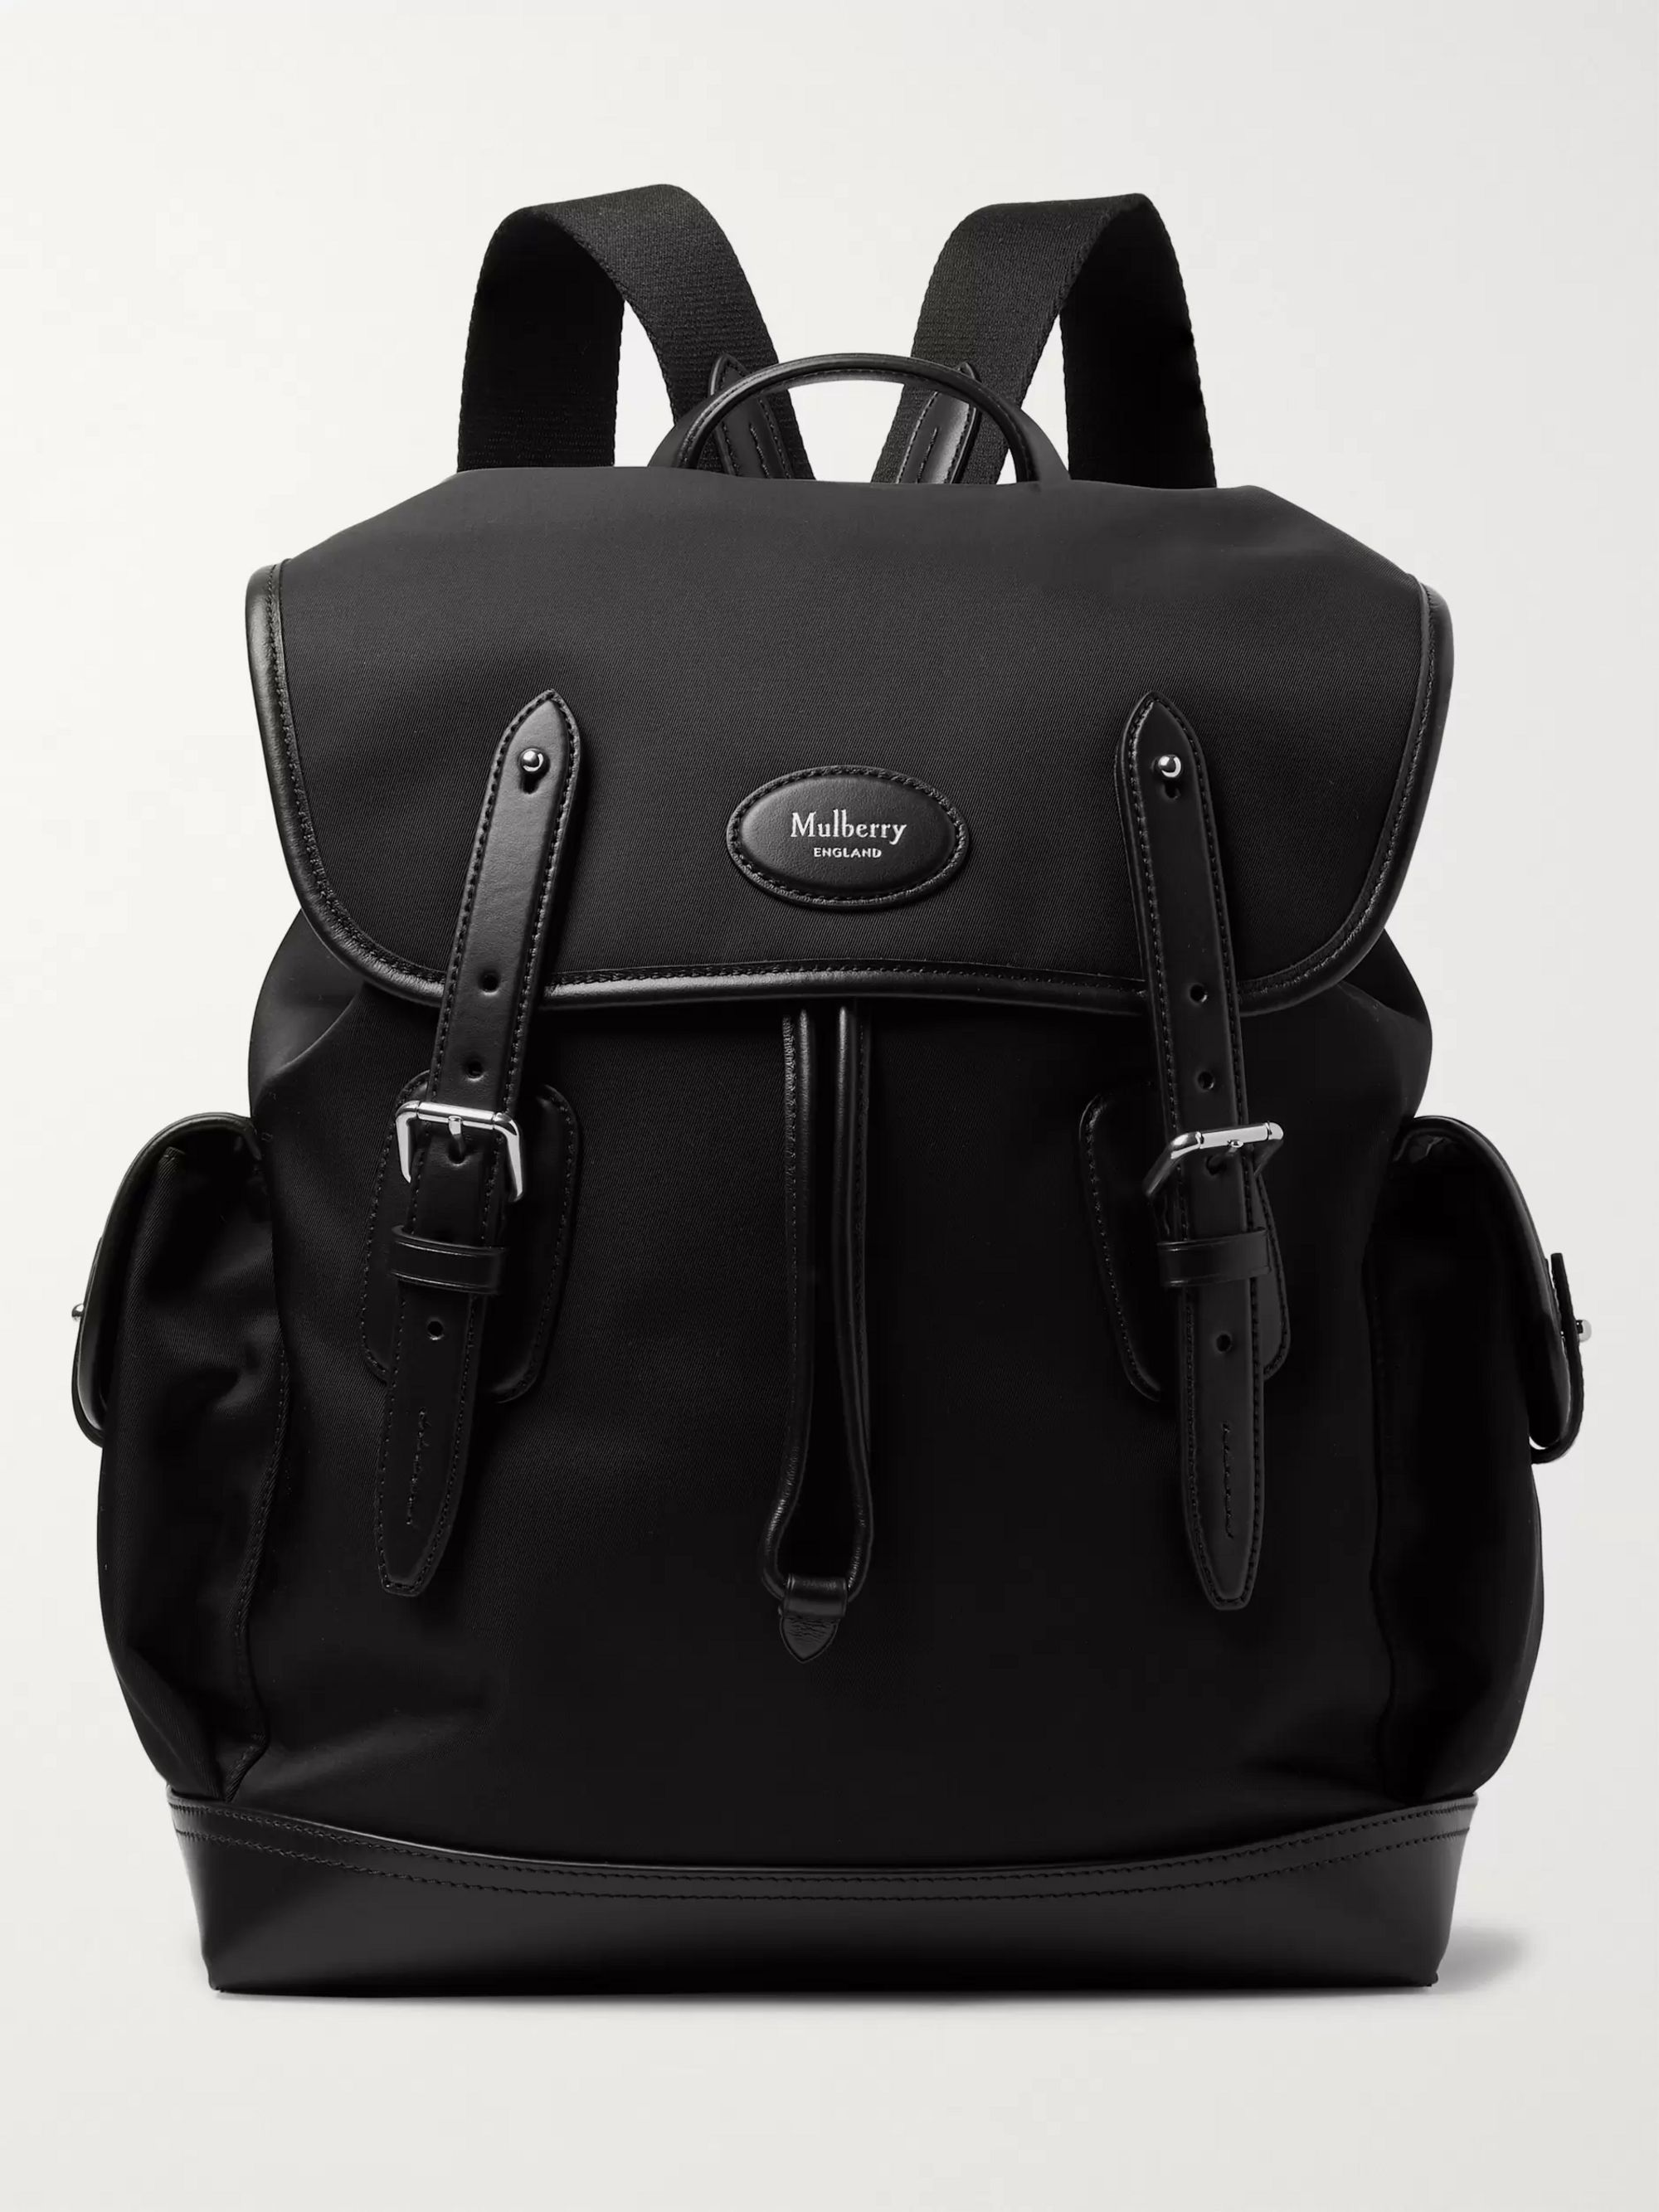 Mulberry Heritage Leather-Trimmed Nylon Backpack